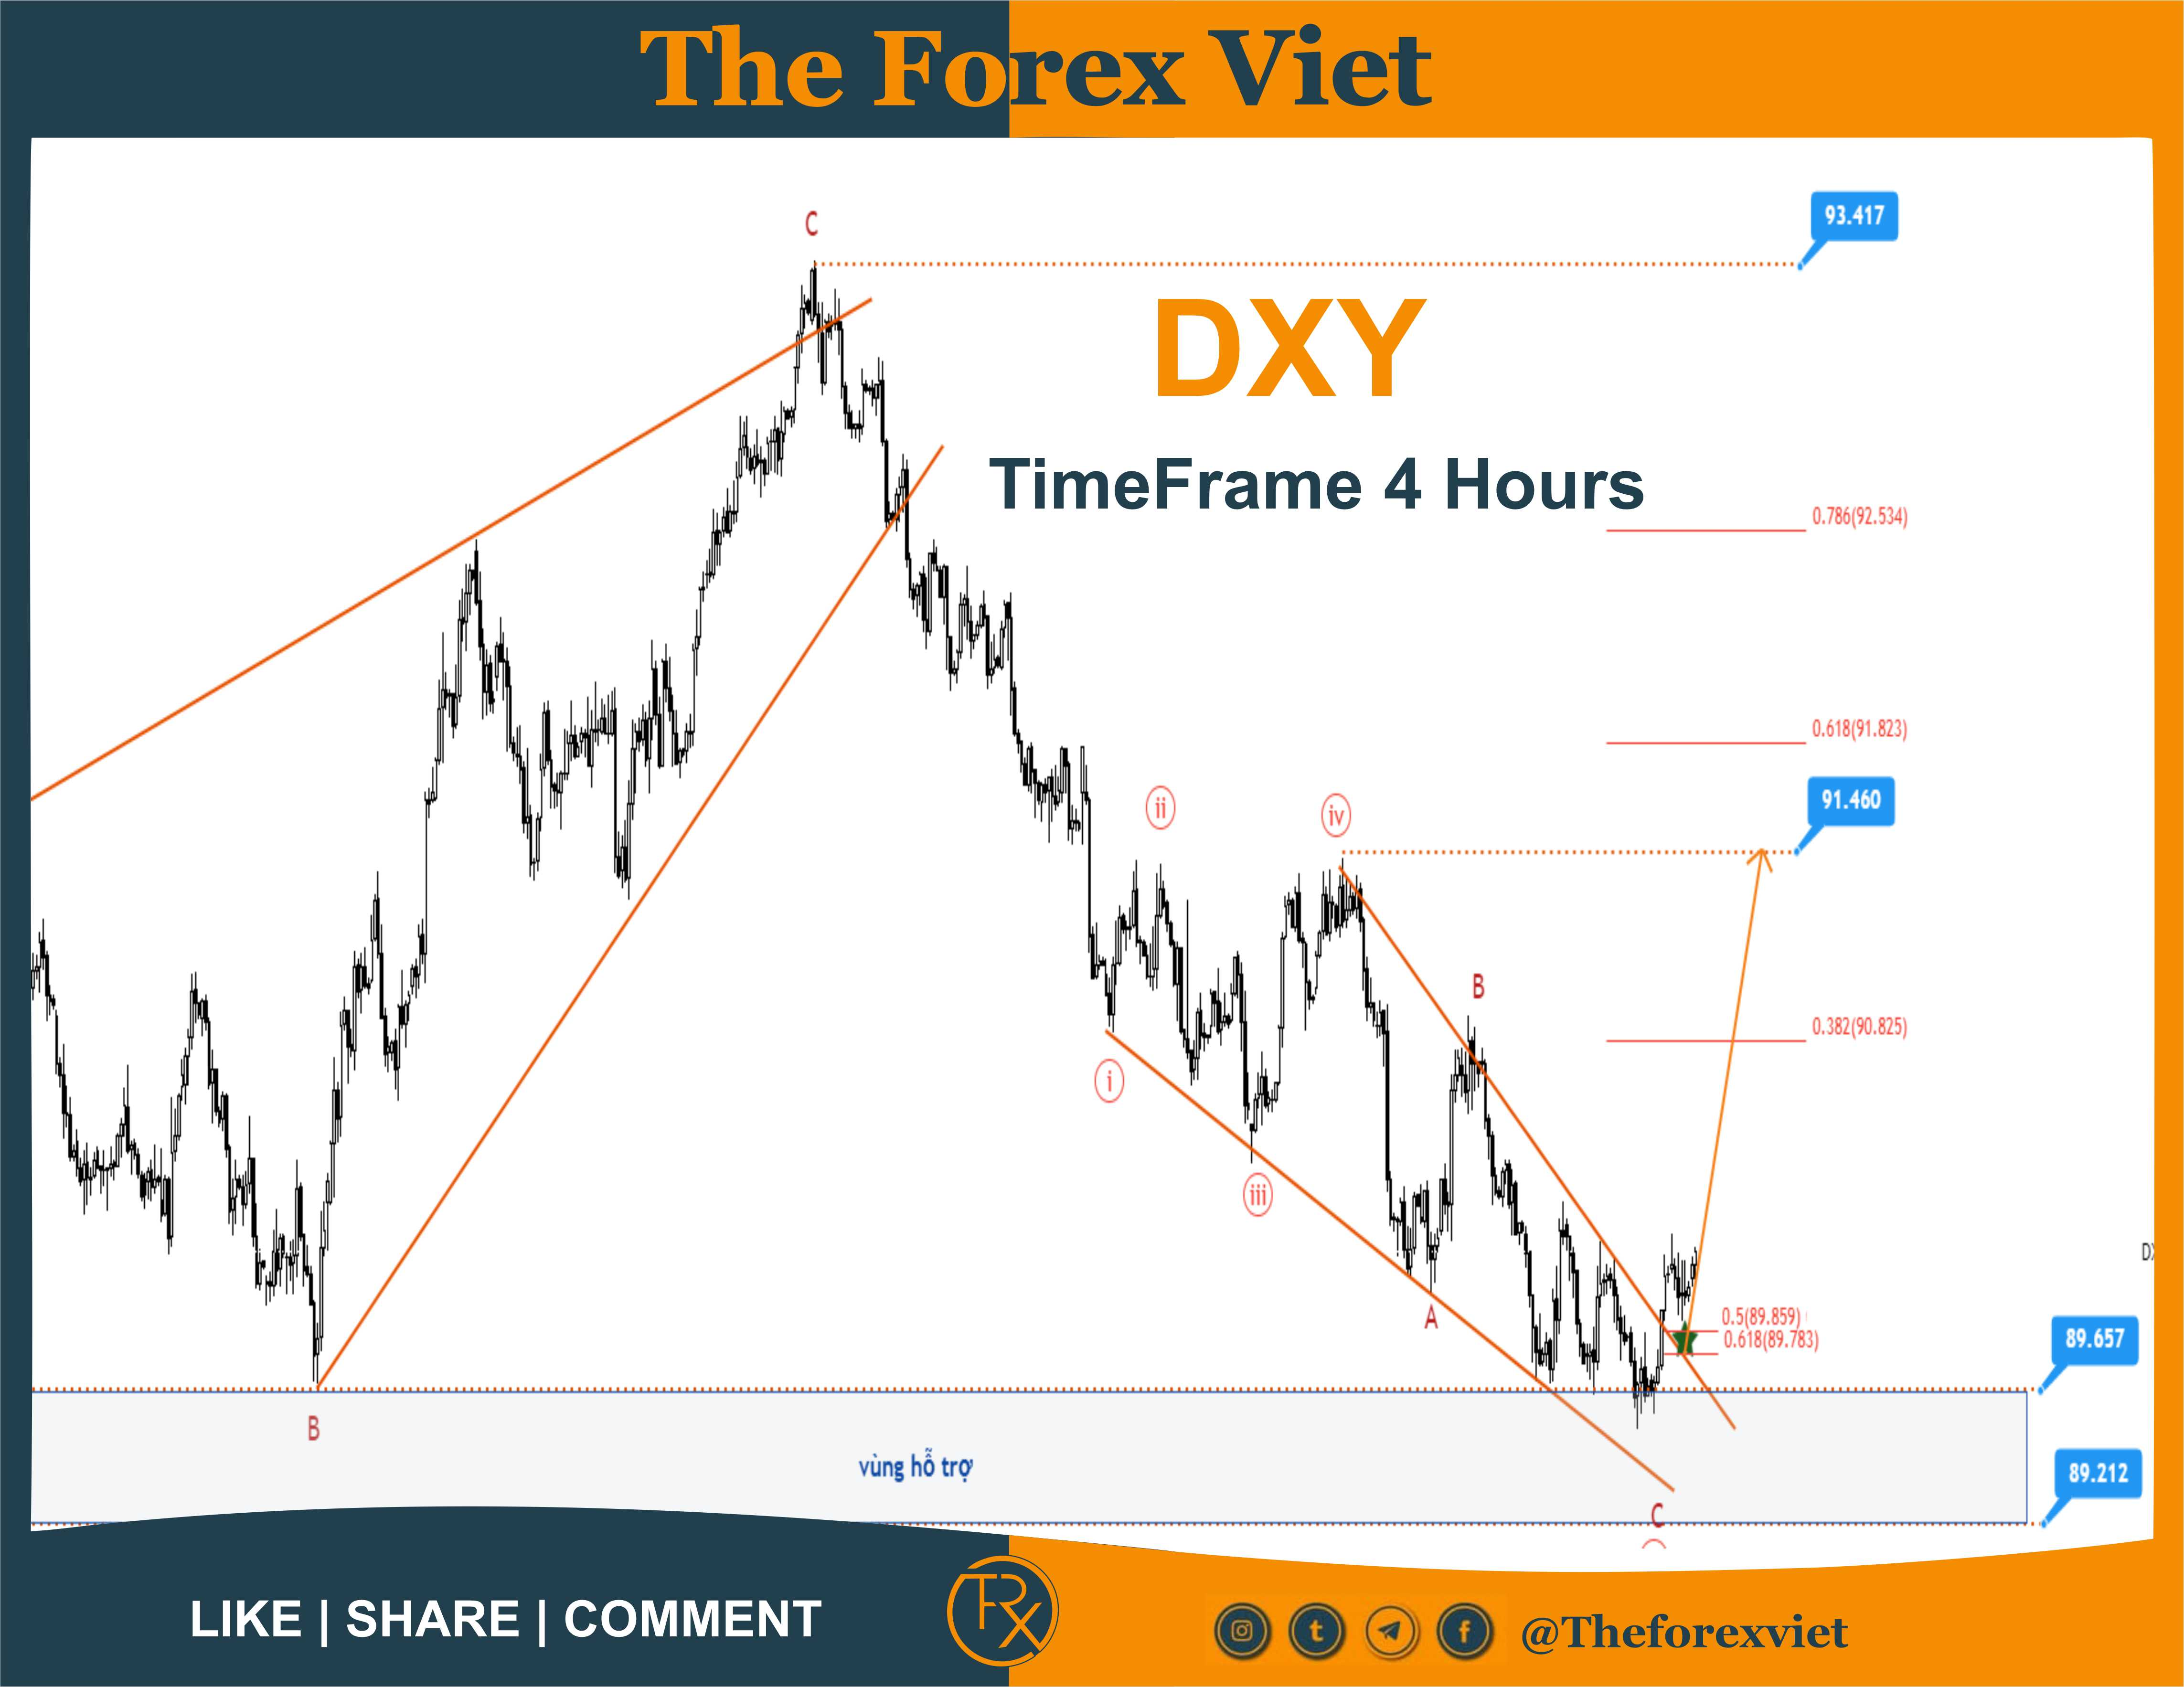 Dxy timeframe 24 hours - 28/05